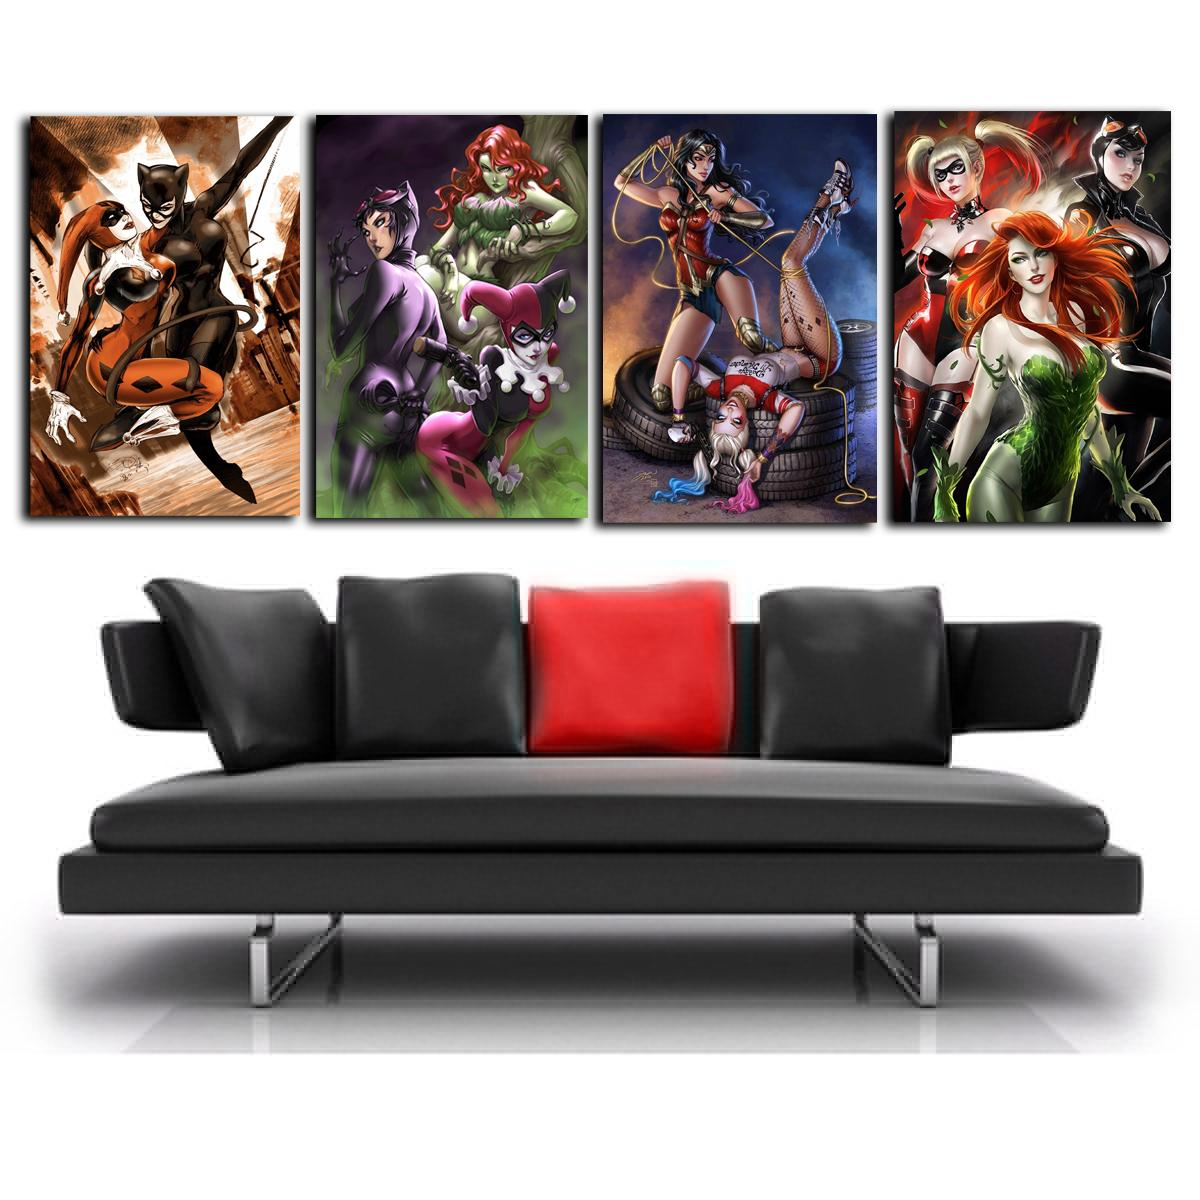 Cat Woman Harley Quinn Poison Ivy Wonder Woman,4 Pieces Canvas Prints Wall Art Oil Painting Home Decor (Unframed/Framed)